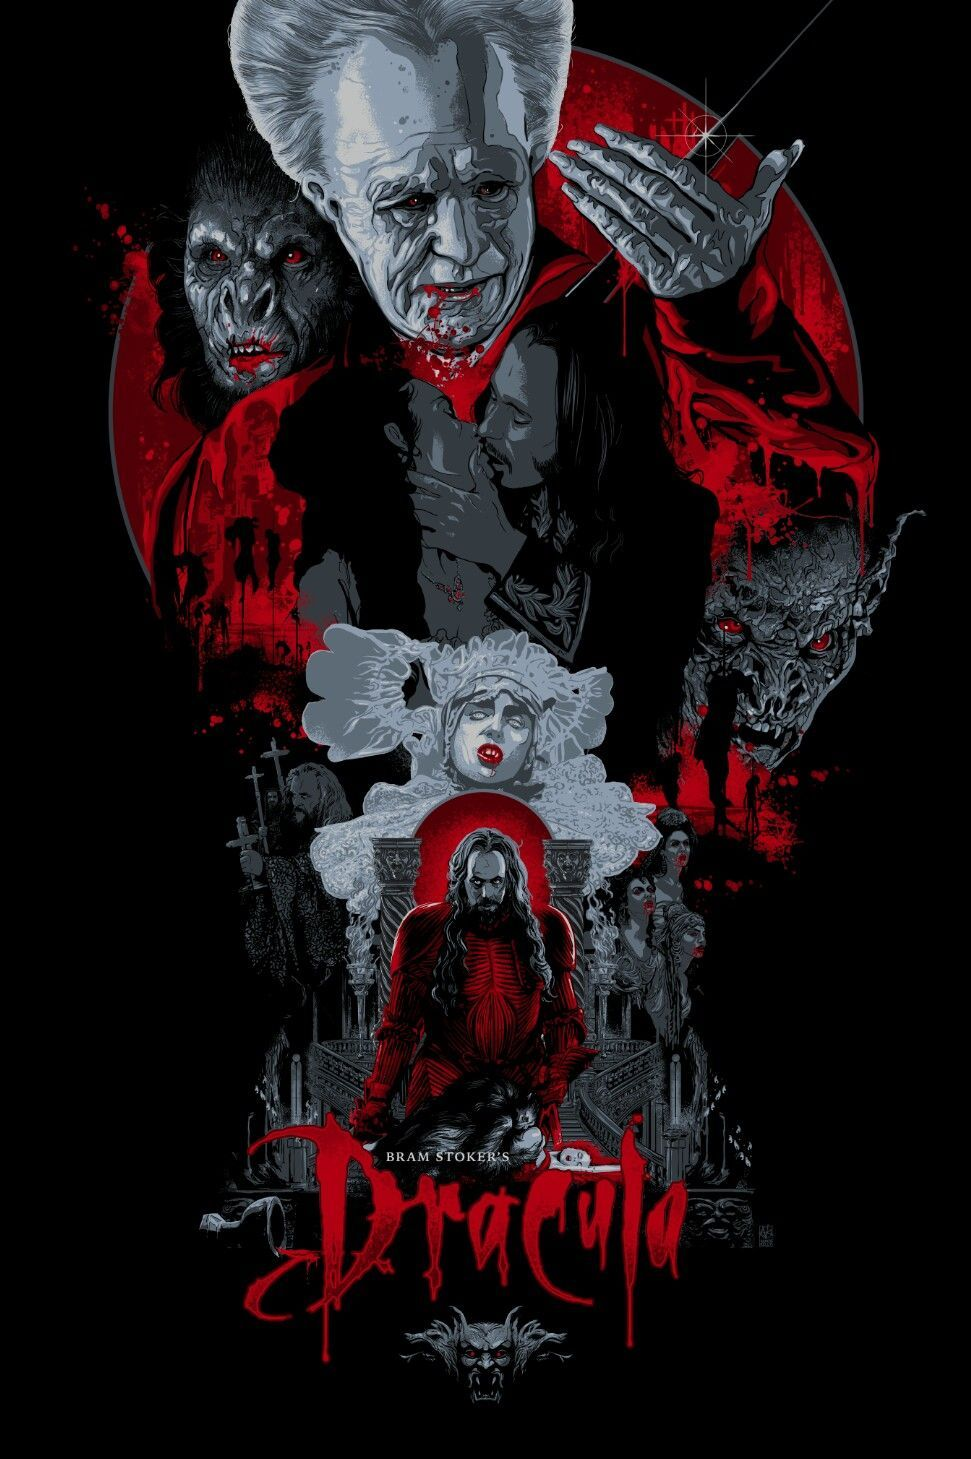 971x1459 Dracula by Vance Kelly | Horror posters, Movie poster art, Horror